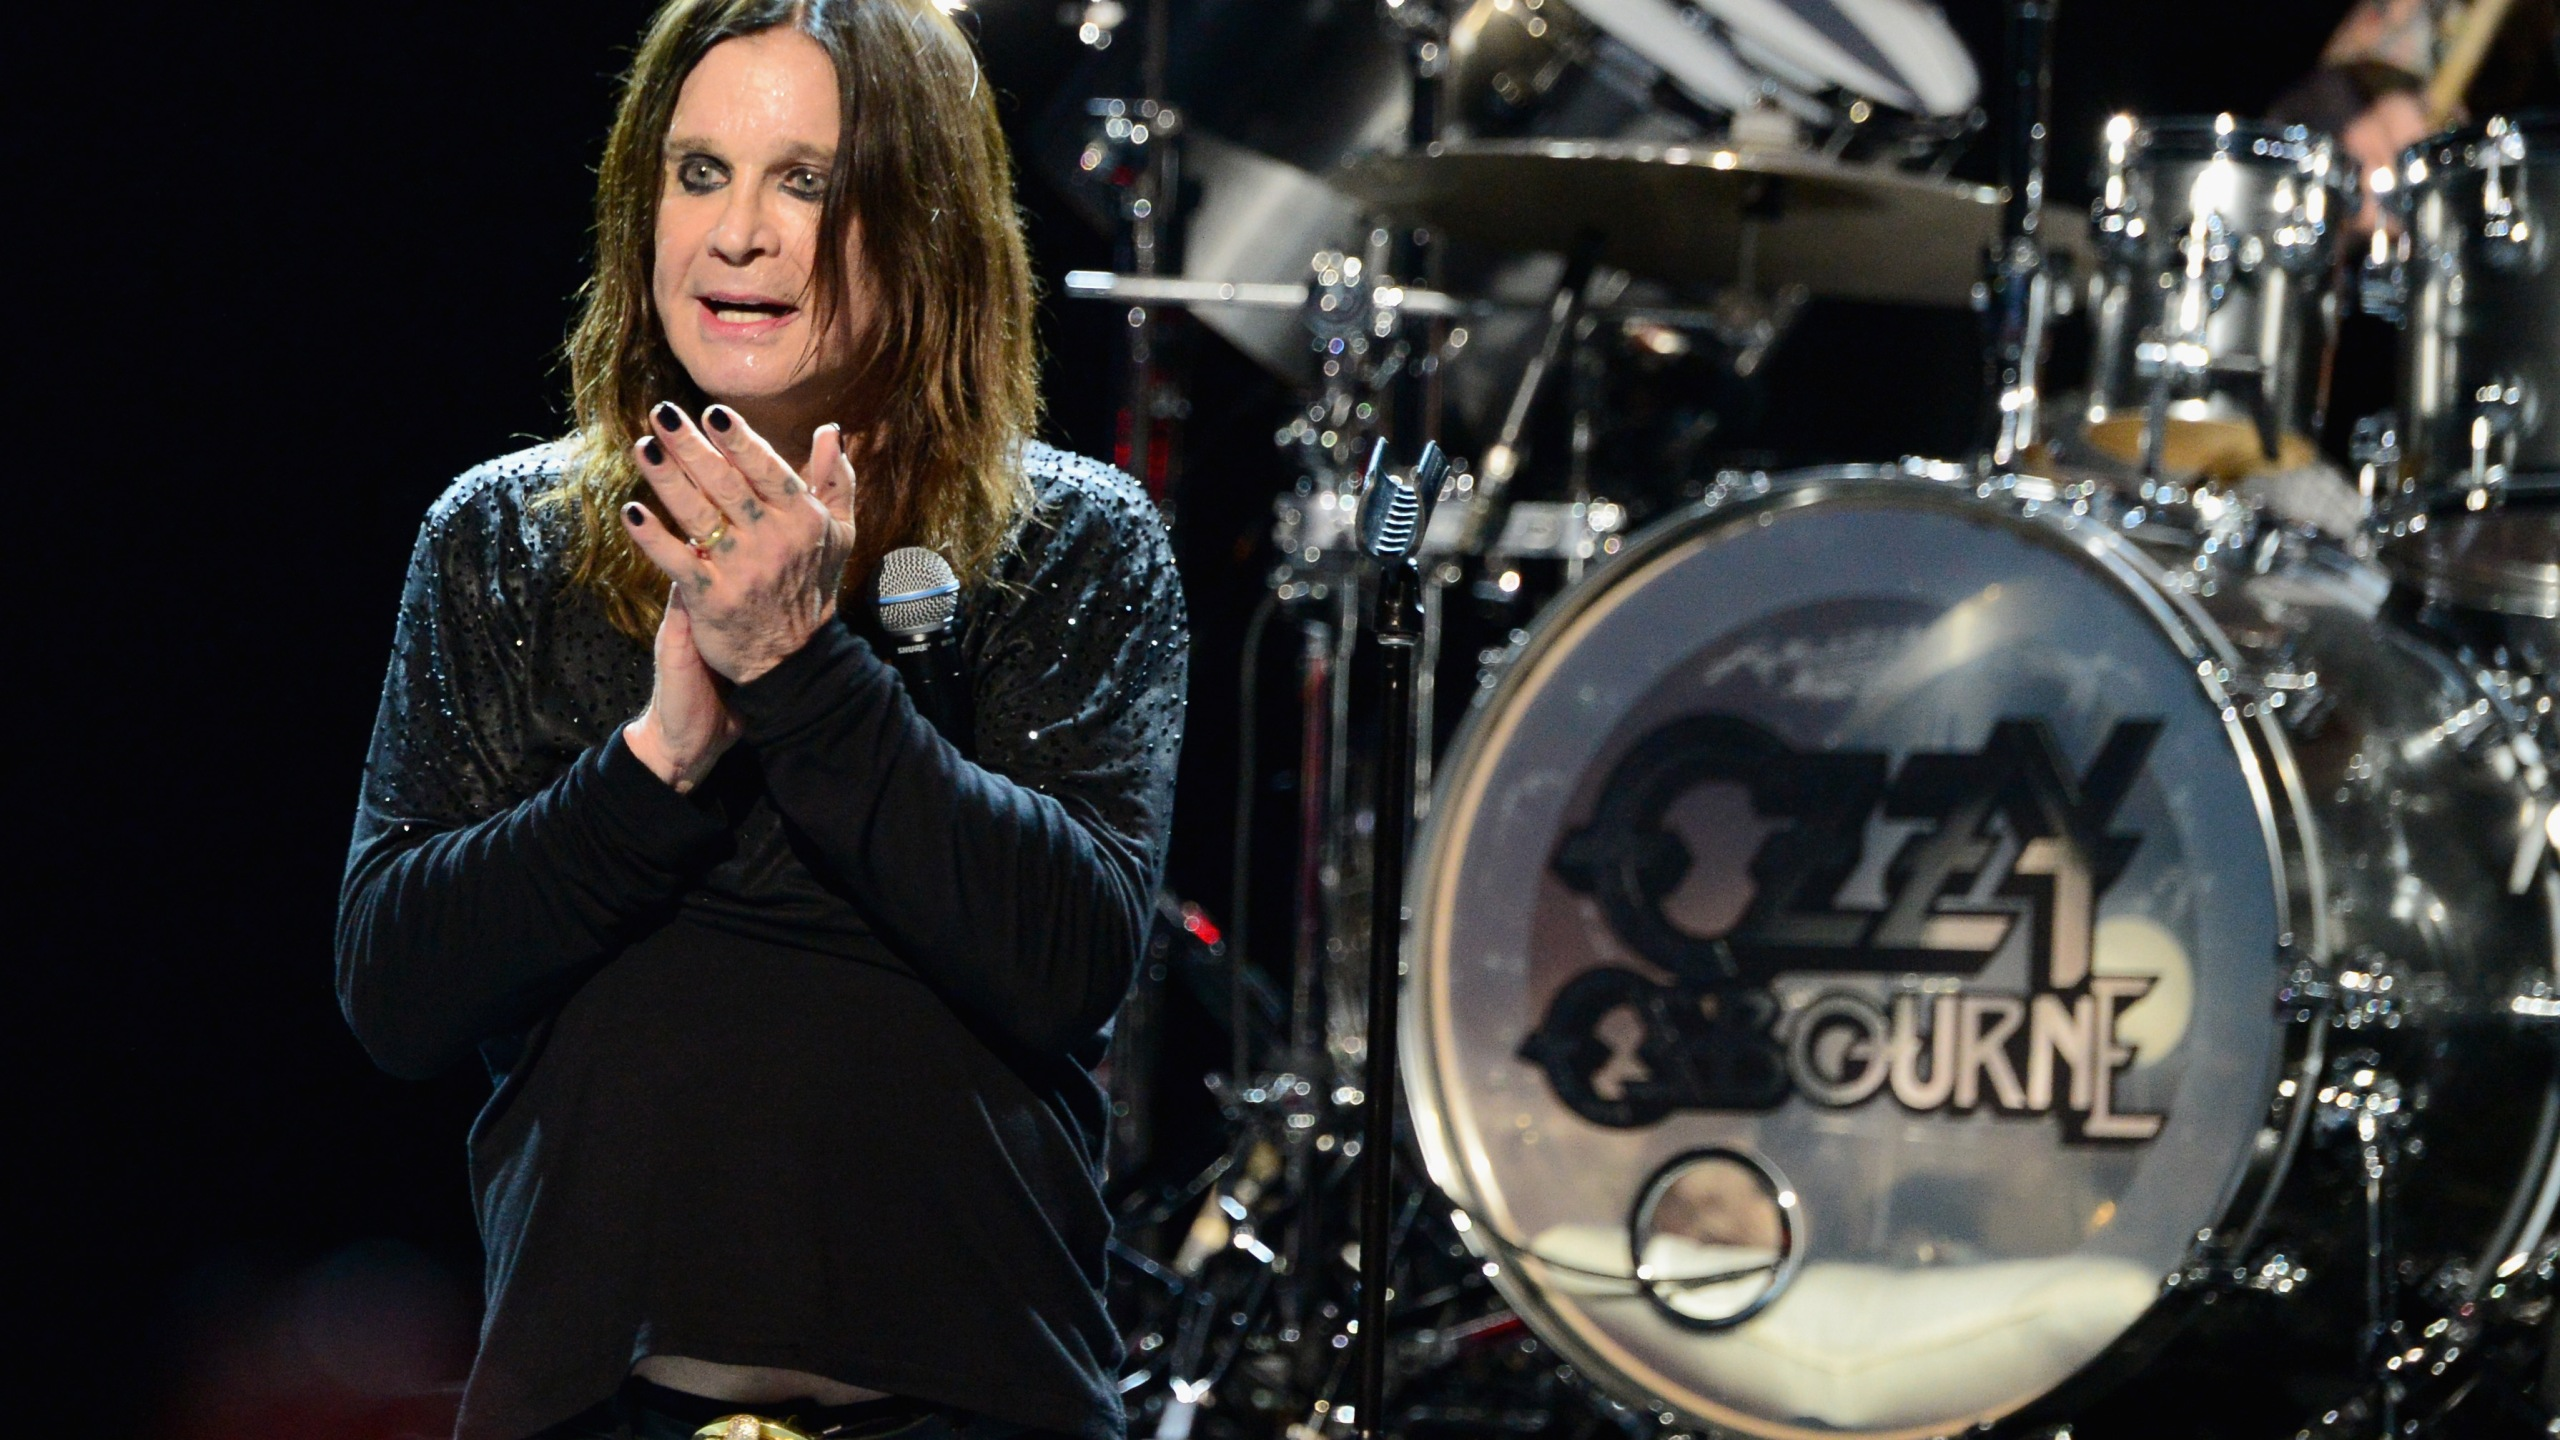 Musician Ozzy Osbourne performs onstage at the 10th annual MusiCares MAP Fund Benefit Concert at Club Nokia on May 12, 2014 in Los Angeles. (Credit: Frazer Harrison/Getty Images)